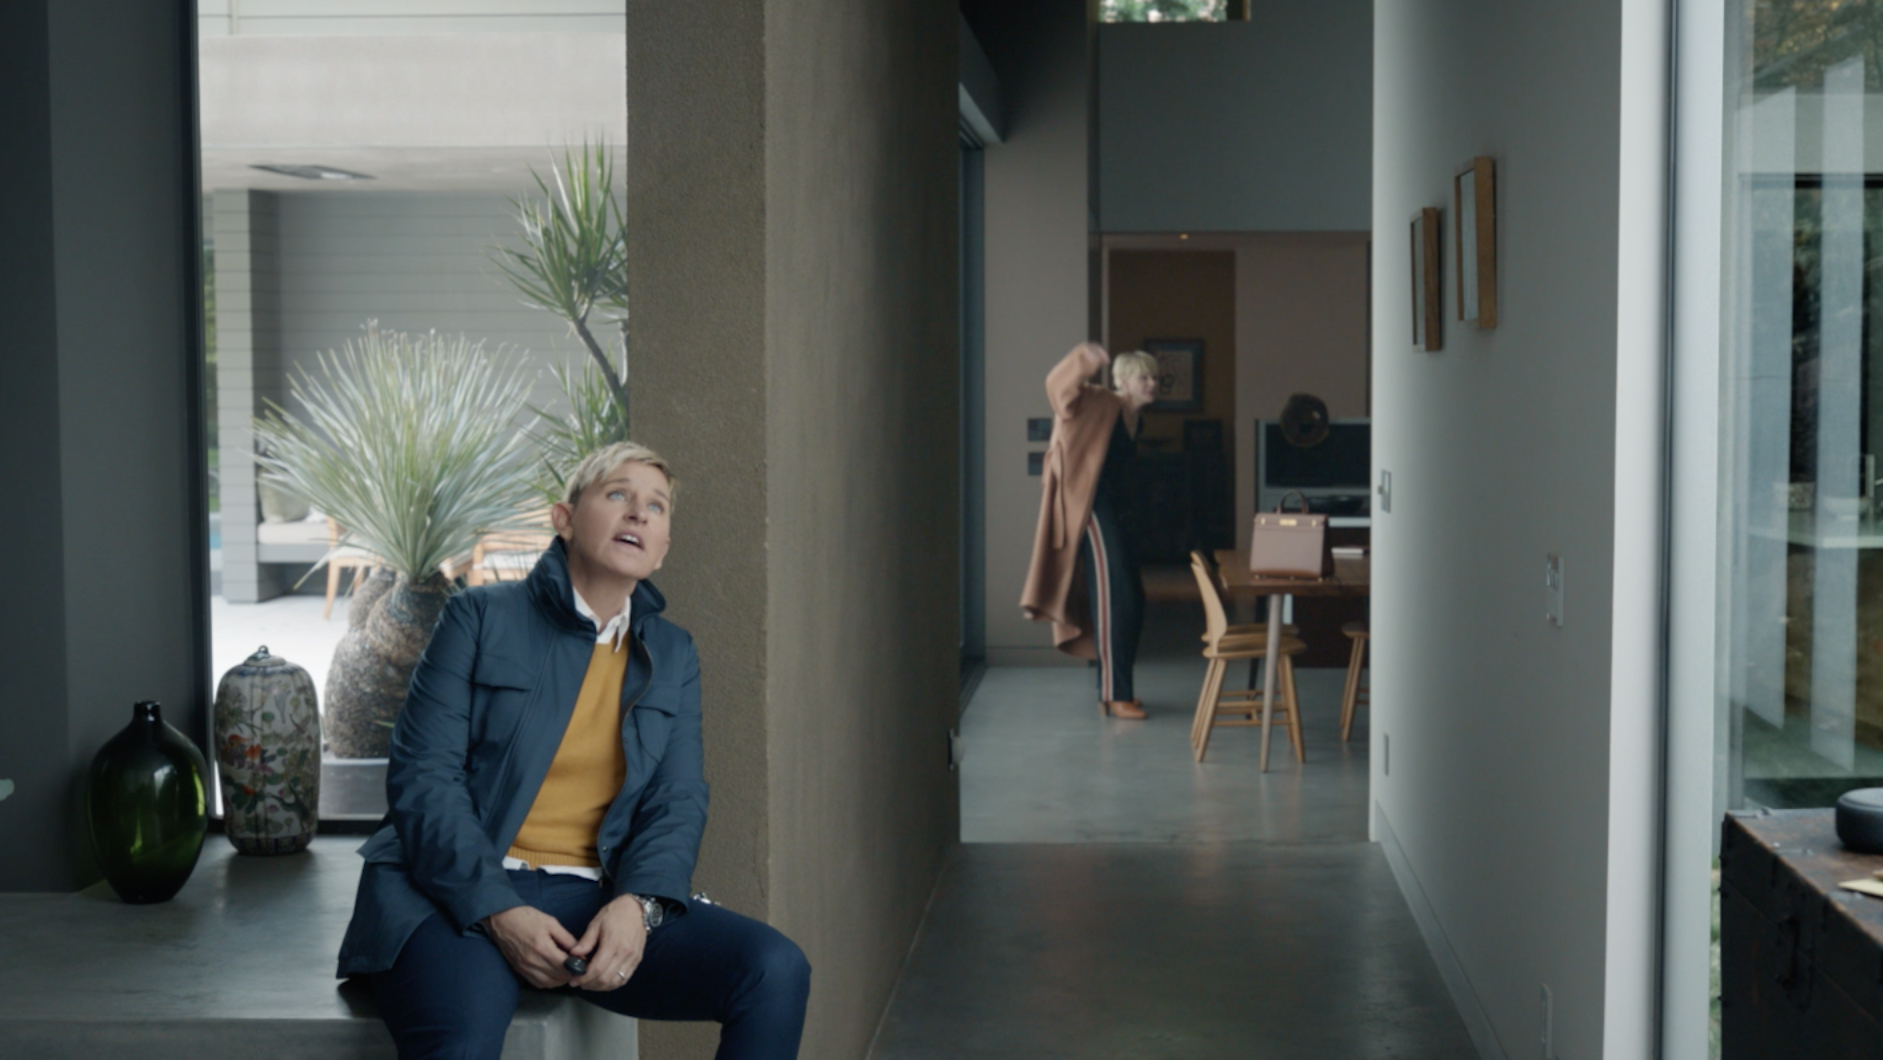 Top 10 Super Bowl 2020 Ads and the People Behind the Scenes